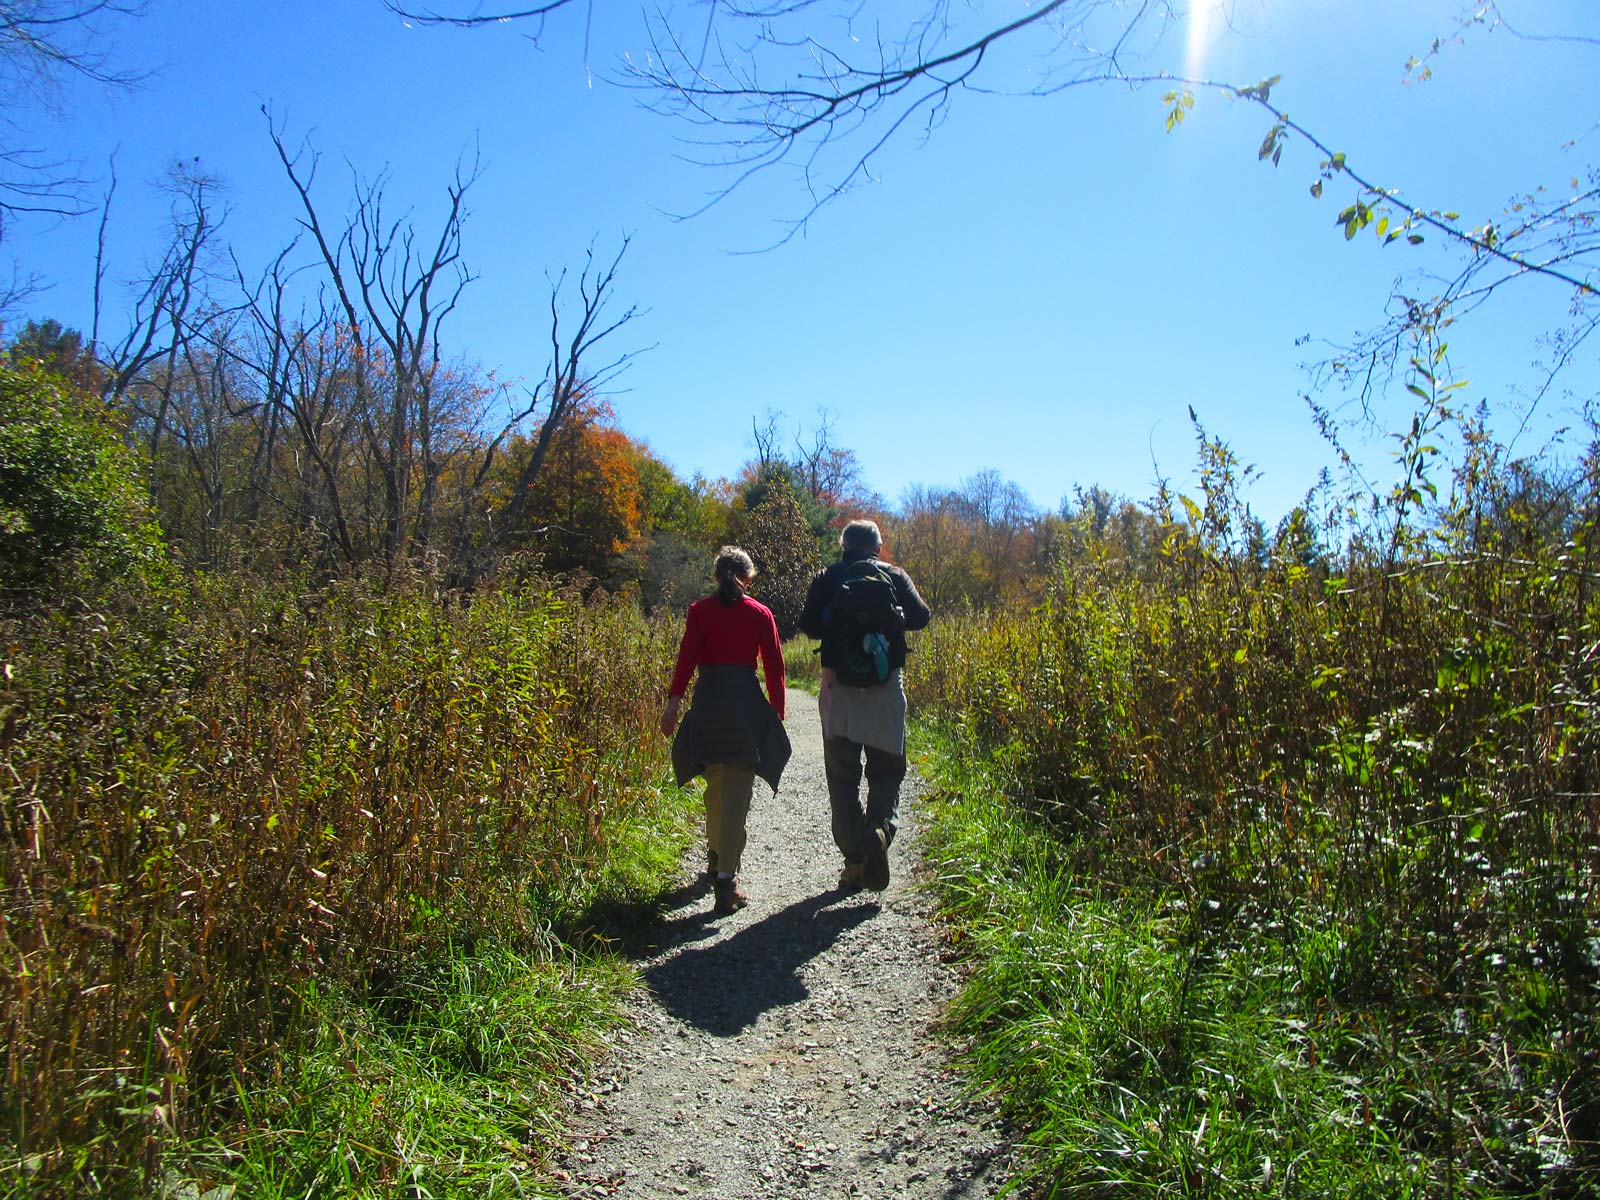 Two kids hiking on the Boone Fork Trail near Julian Price Campground off the Blue Ridge Parkway, North Carolina